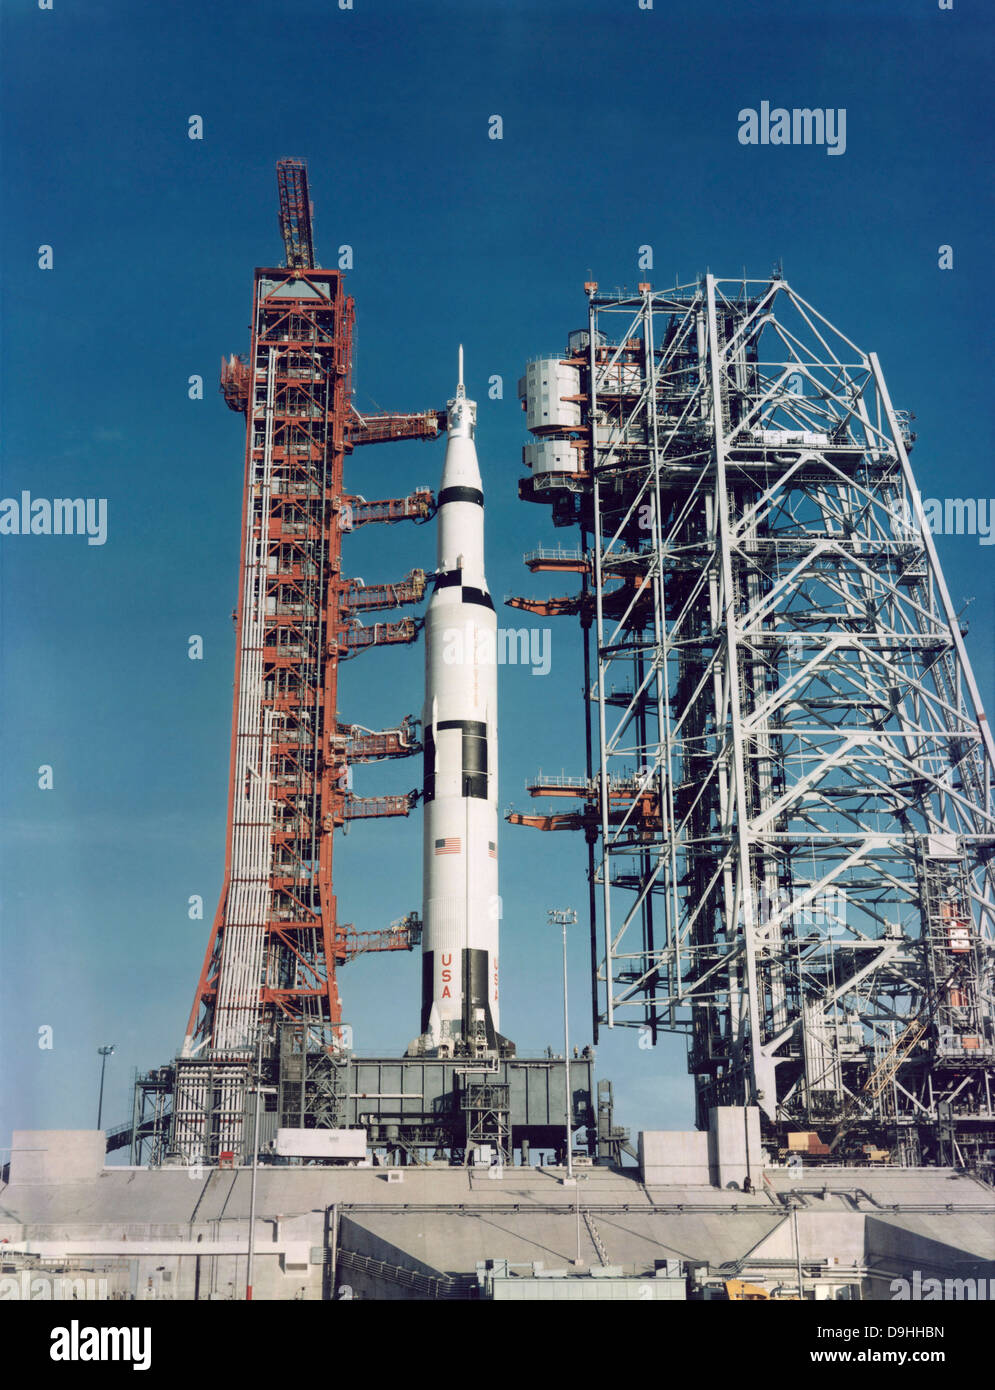 The Apollo 8 space vehicle on the launch pad at Kennedy Space Center - Stock Image